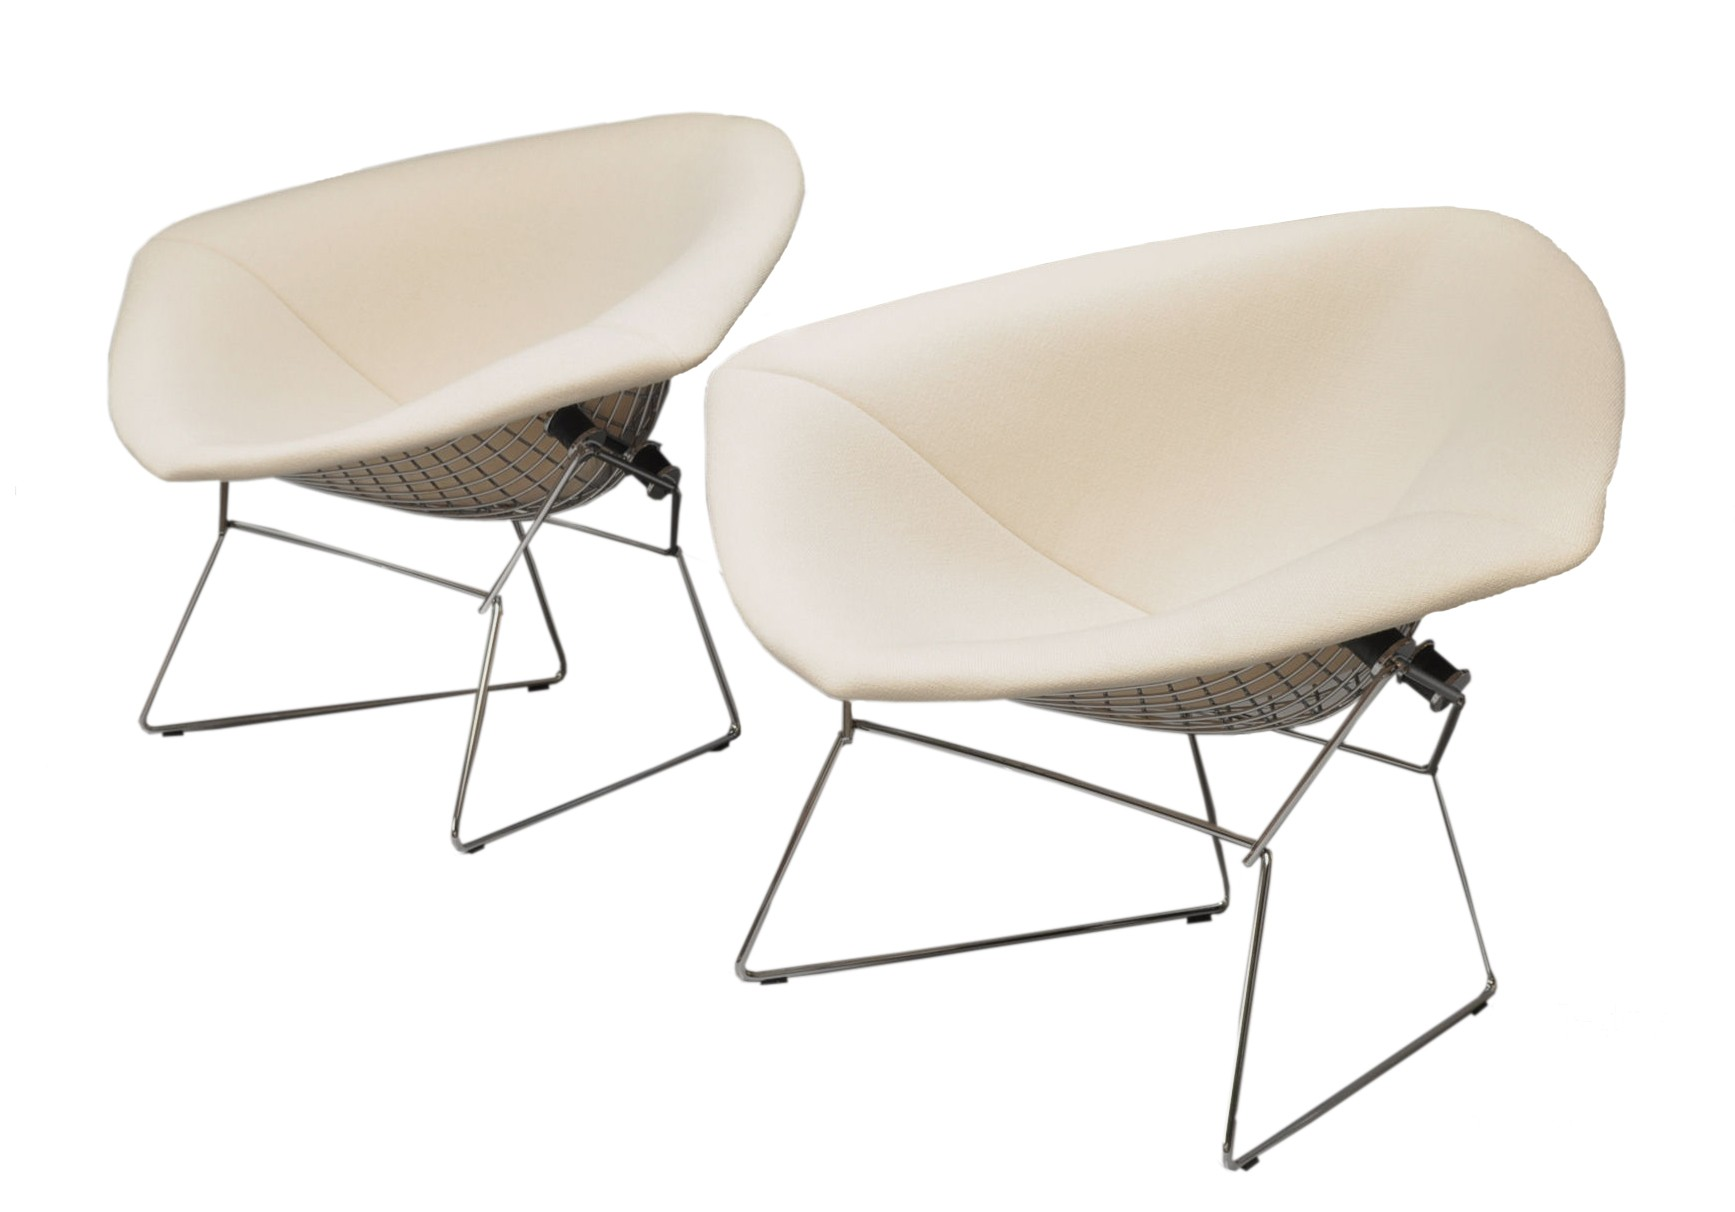 Diamond Chair in chromium fabric and steel Harry BERTOIA